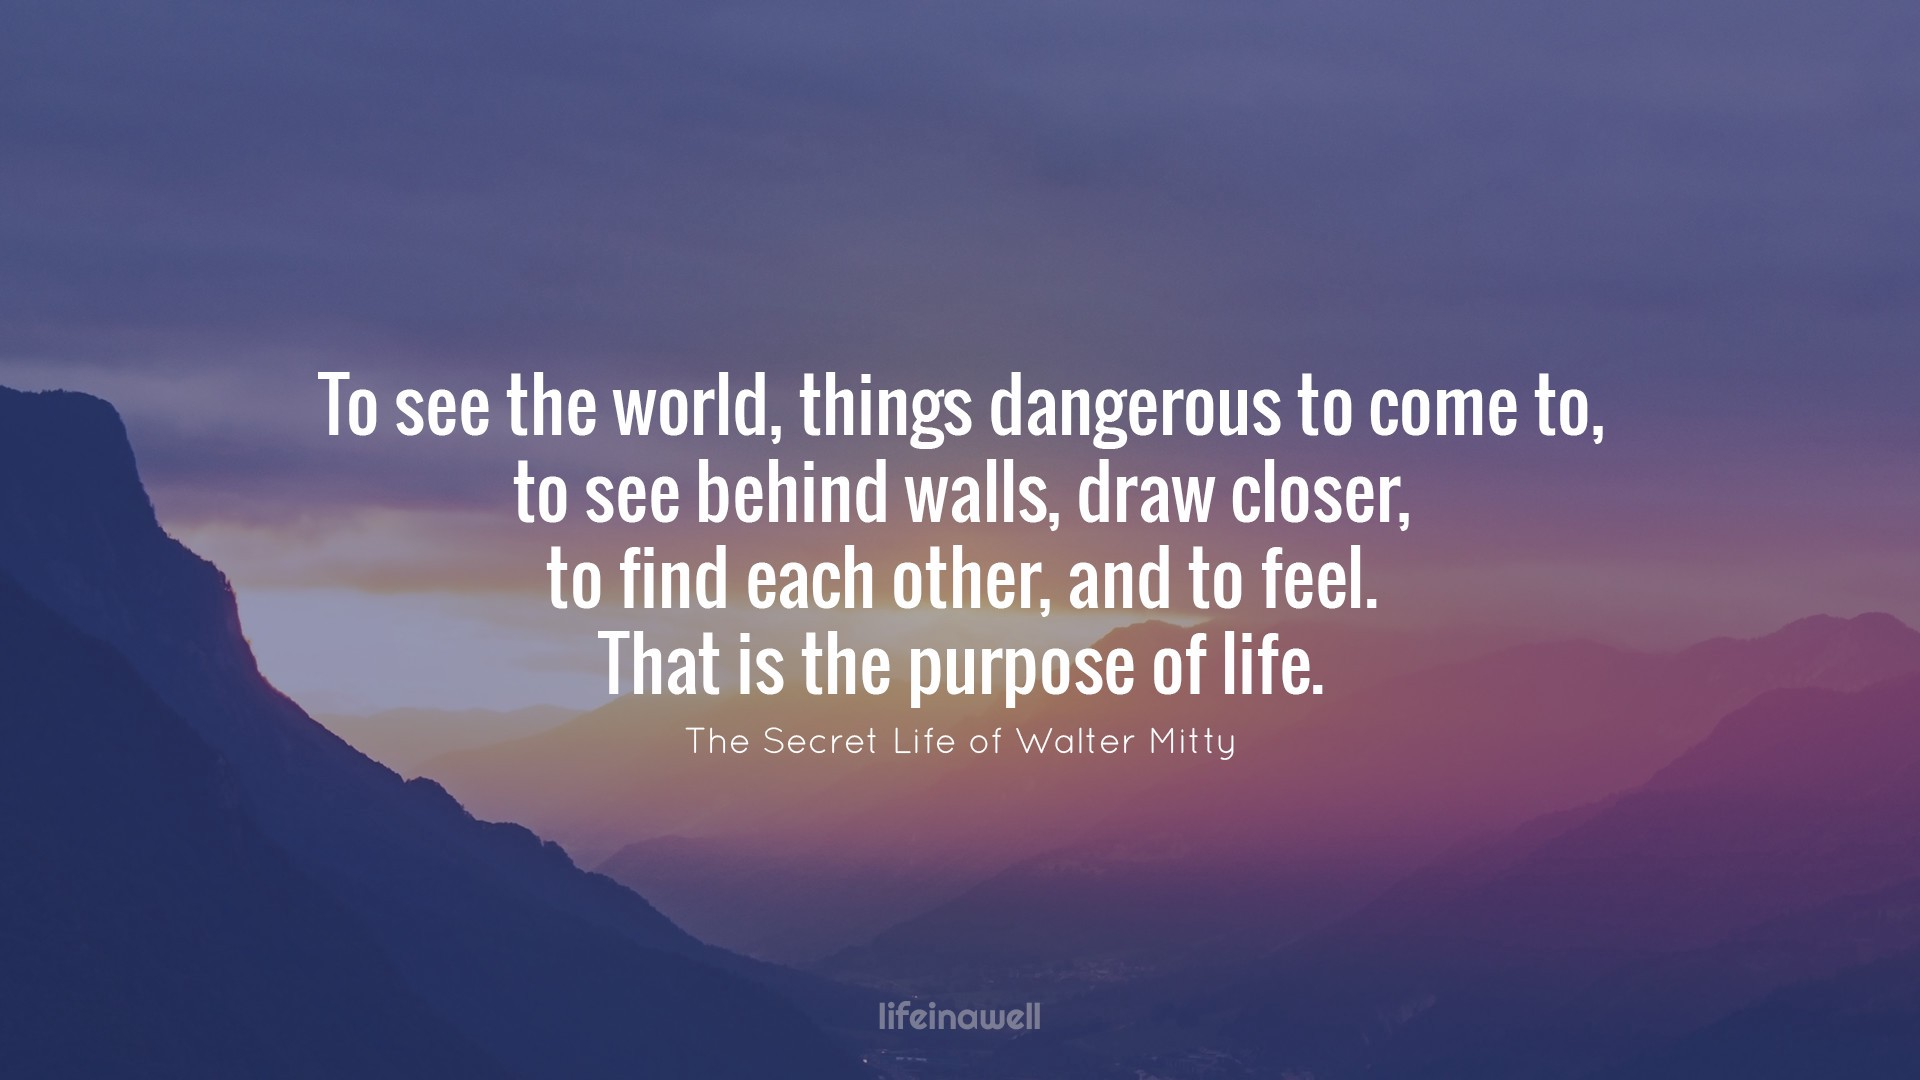 Quotes Purpose Of Life 4 Inspirational Quotes From 'the Secret Life Of Walter Mitty'